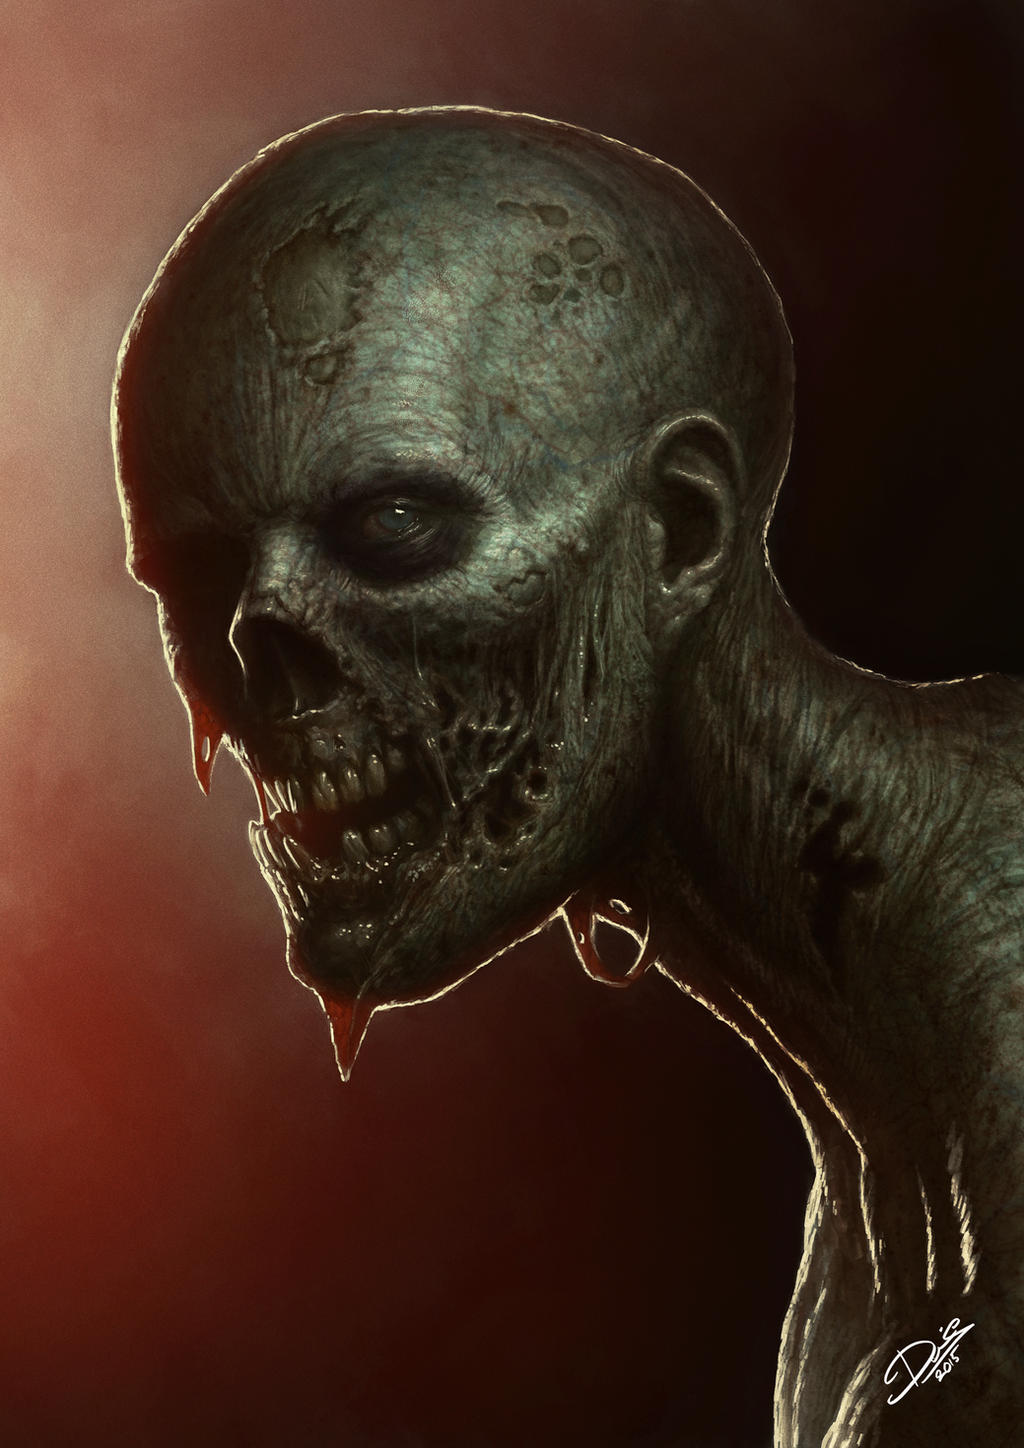 Biter by Disse86